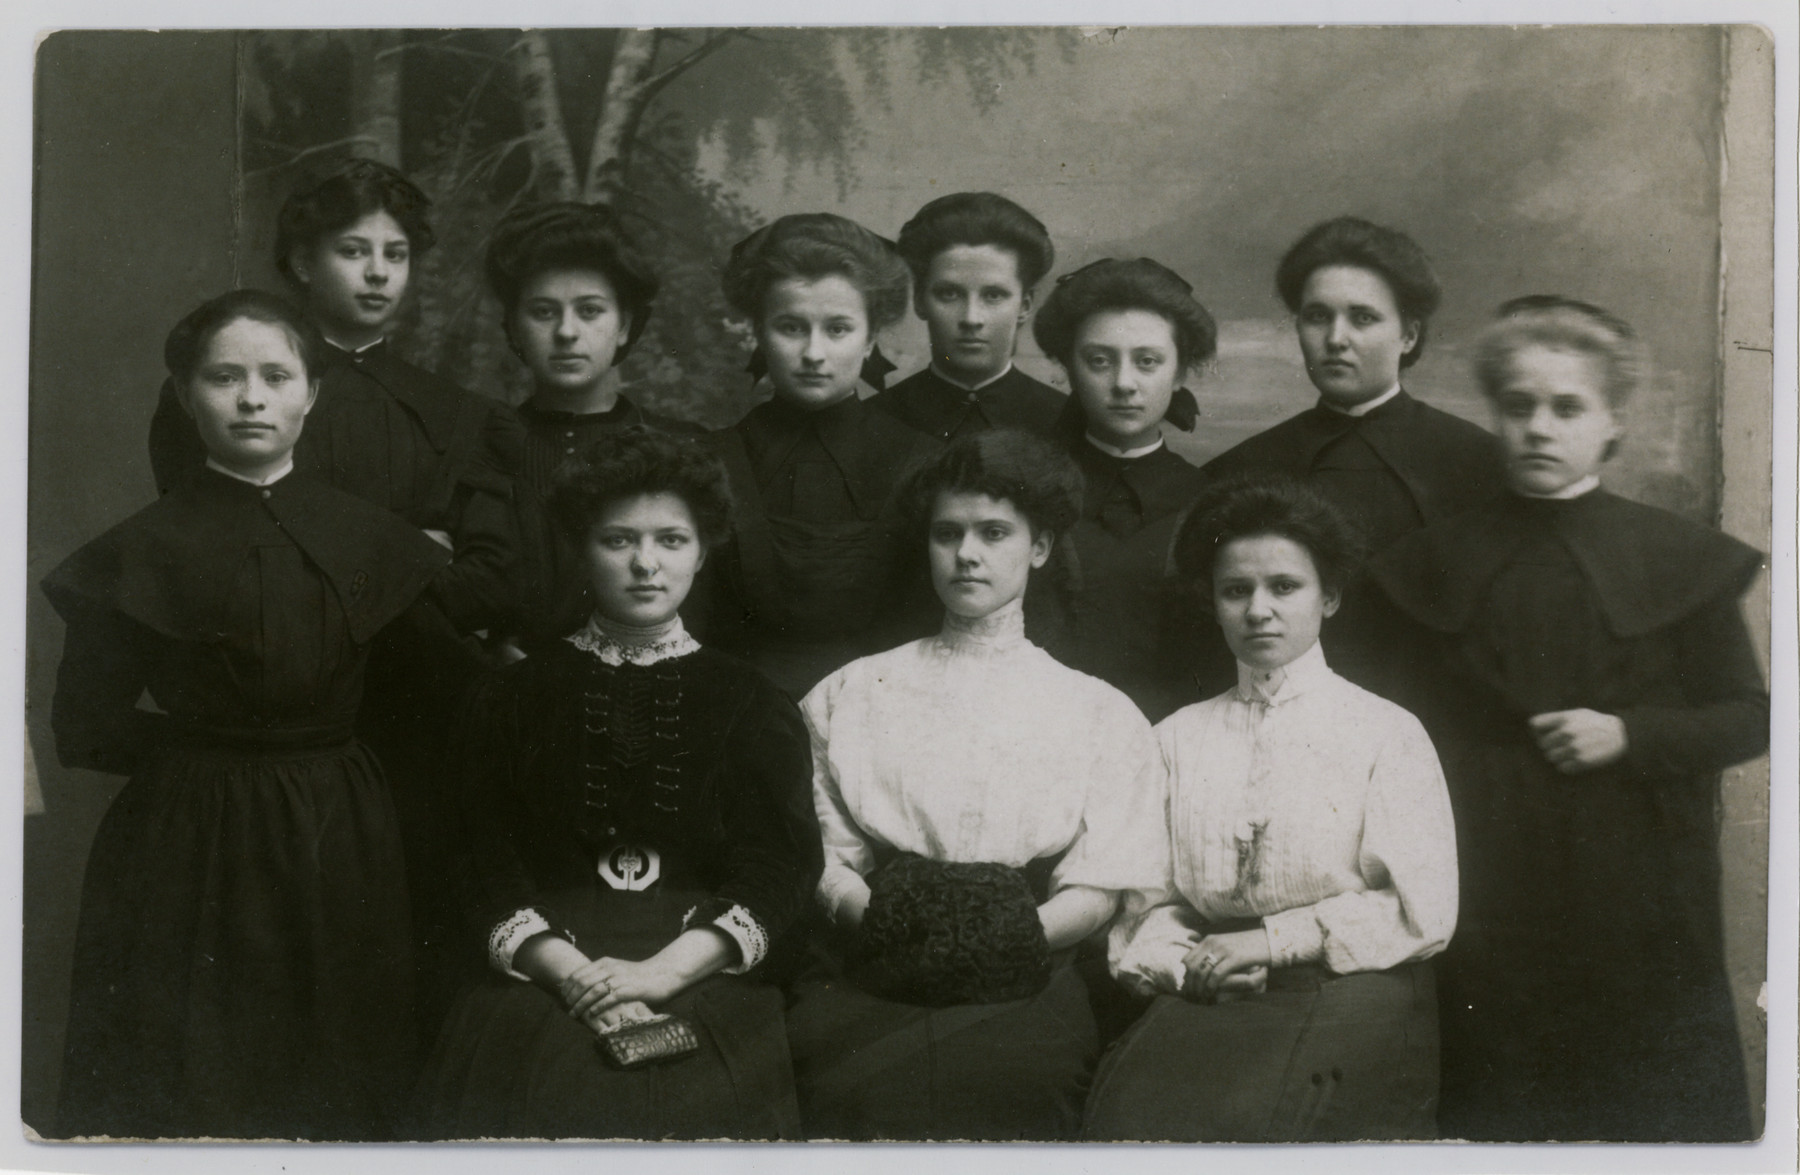 Group portrait of young women in the school for the deaf in Warsaw.  Rebecca Jaglom (Wajcblum) is standing third from the left.